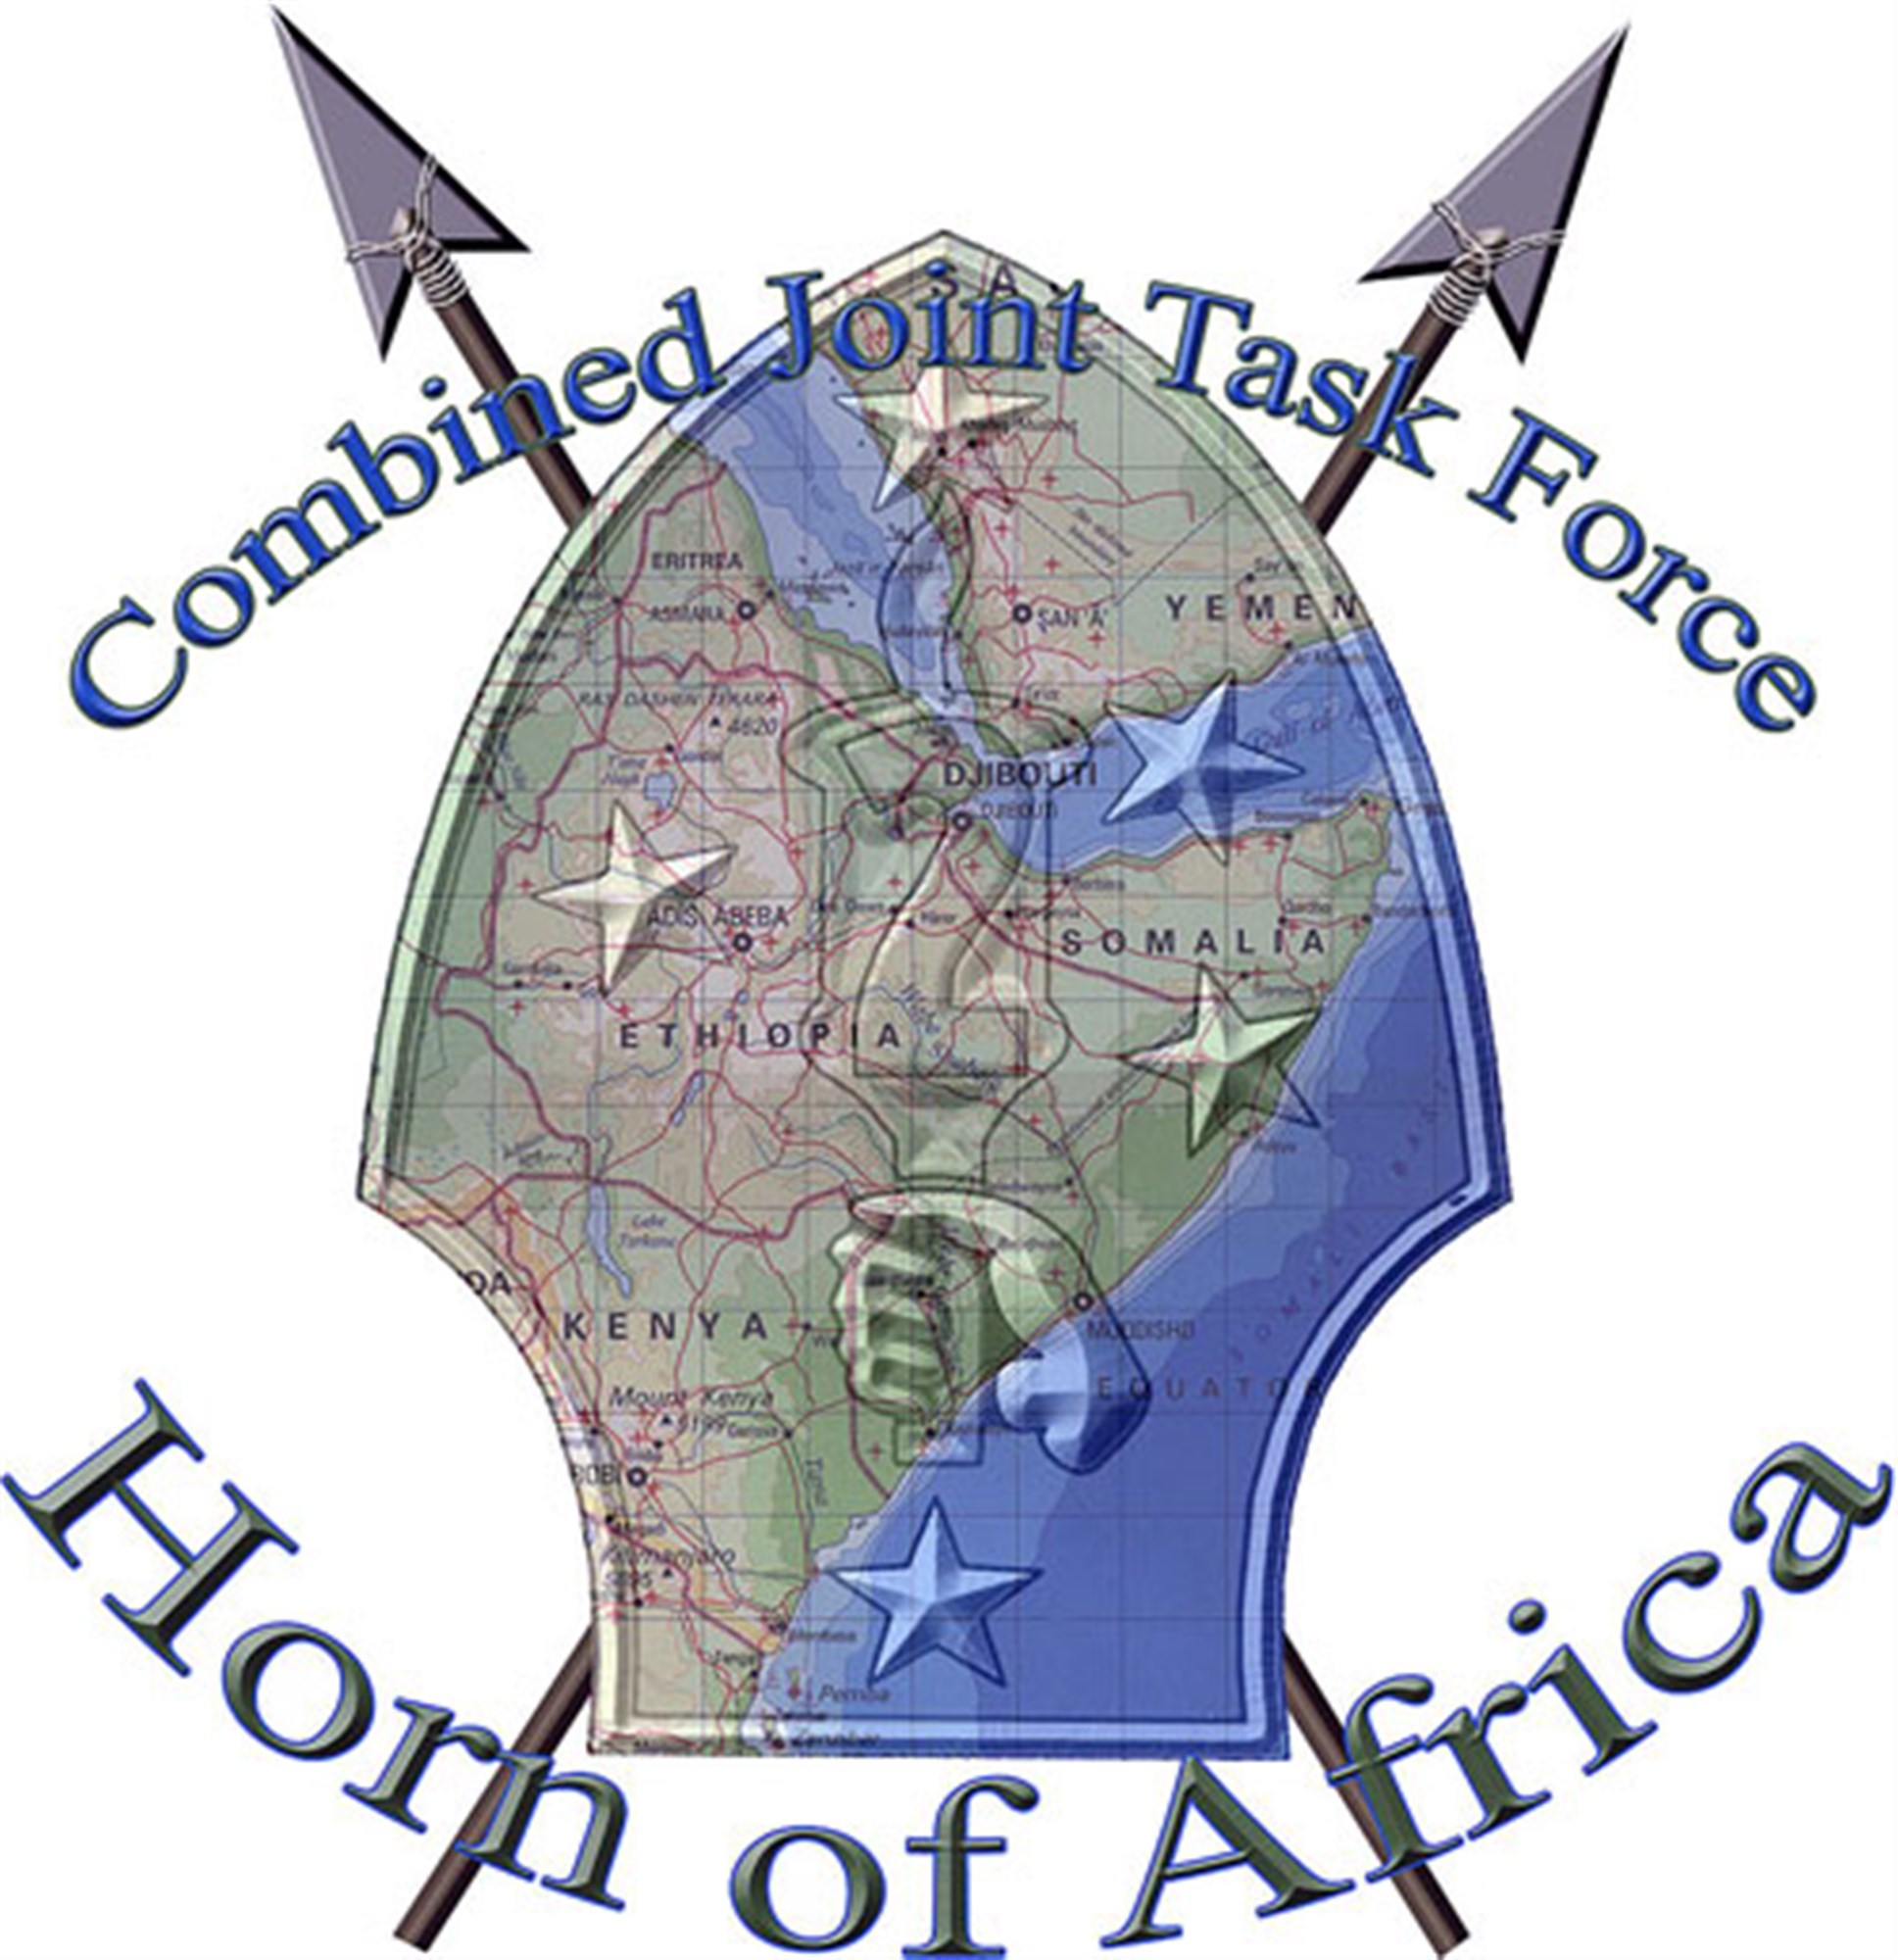 In the Horn of Africa, CJTF-HOA is the U.S. Africa Command organization that conducts operations in the region to enhance partner nation capacity, promote regional security and stability, dissuade conflict, and protect U.S. and coalition interests.